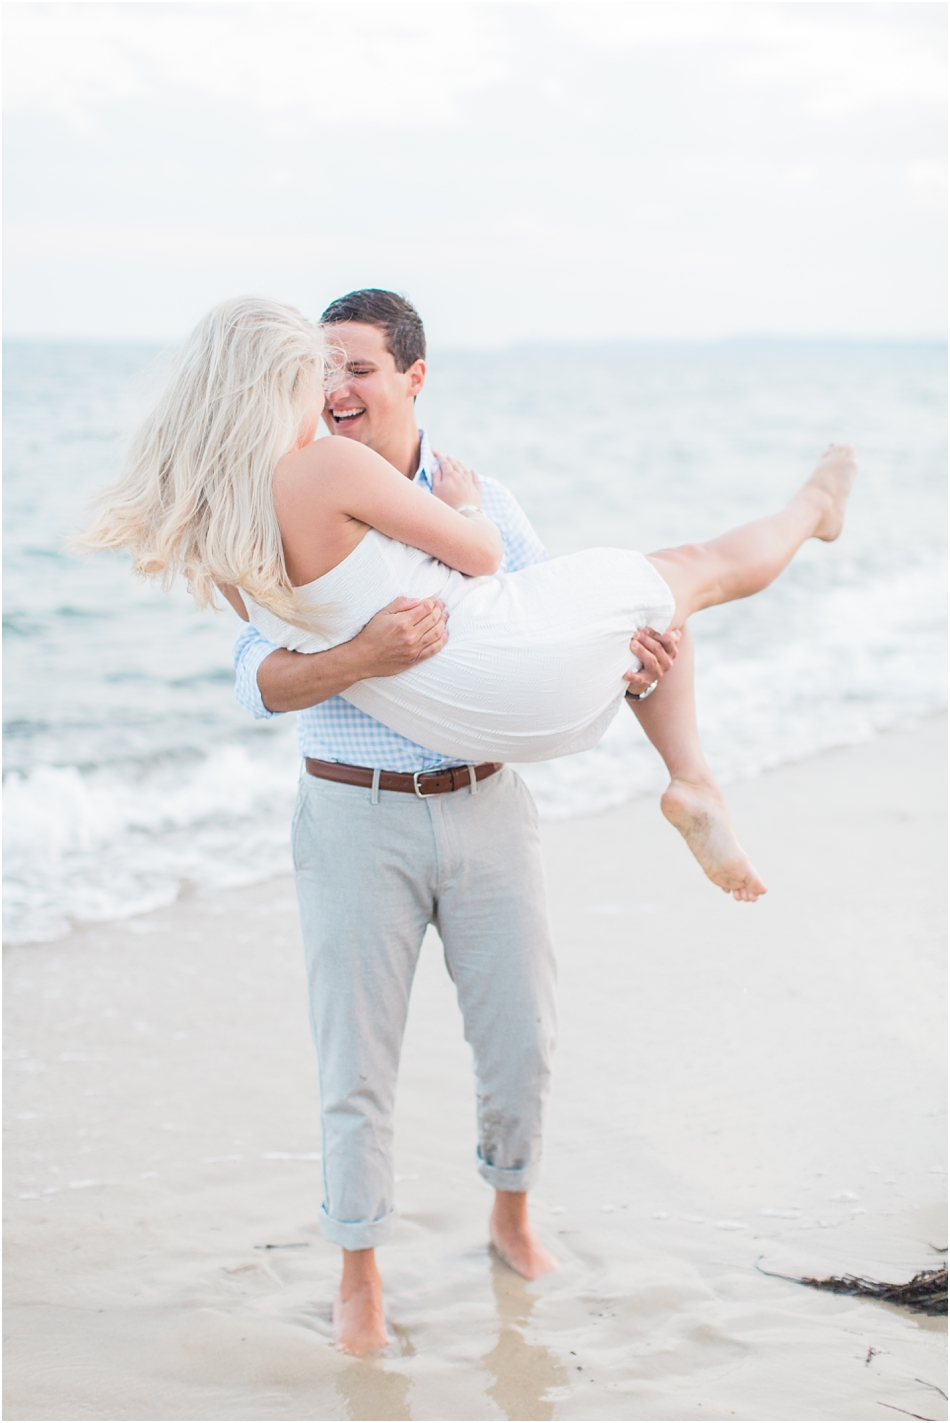 falmouth_beach_engagement_white_picket_fence_cape_cod_boston_new_england_wedding_photographer_Meredith_Jane_Photography_photo_2499.jpg